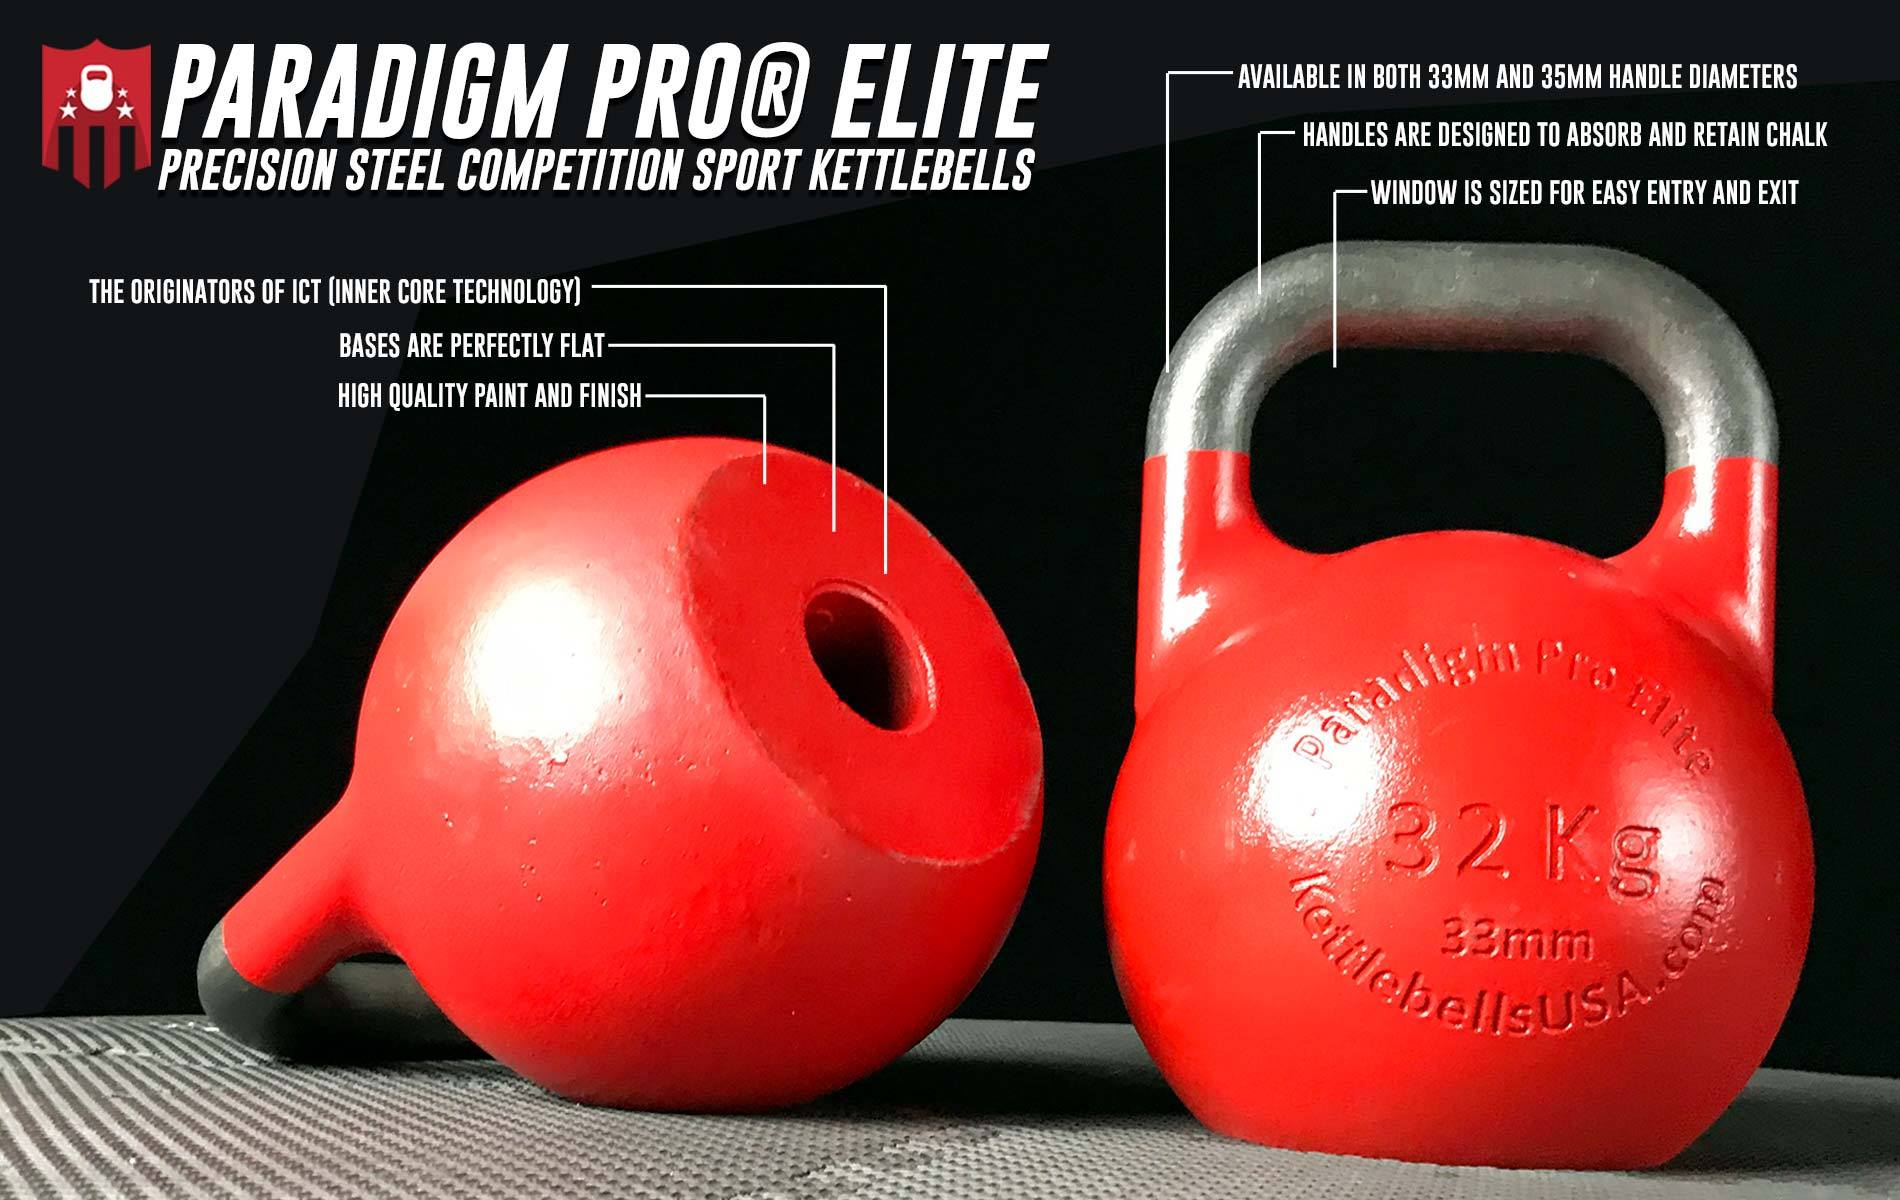 Paradigm Pro® Elite Precision Inner Core Technology Competition Sport Kettlebells 33mm 35 mm handle free shipping